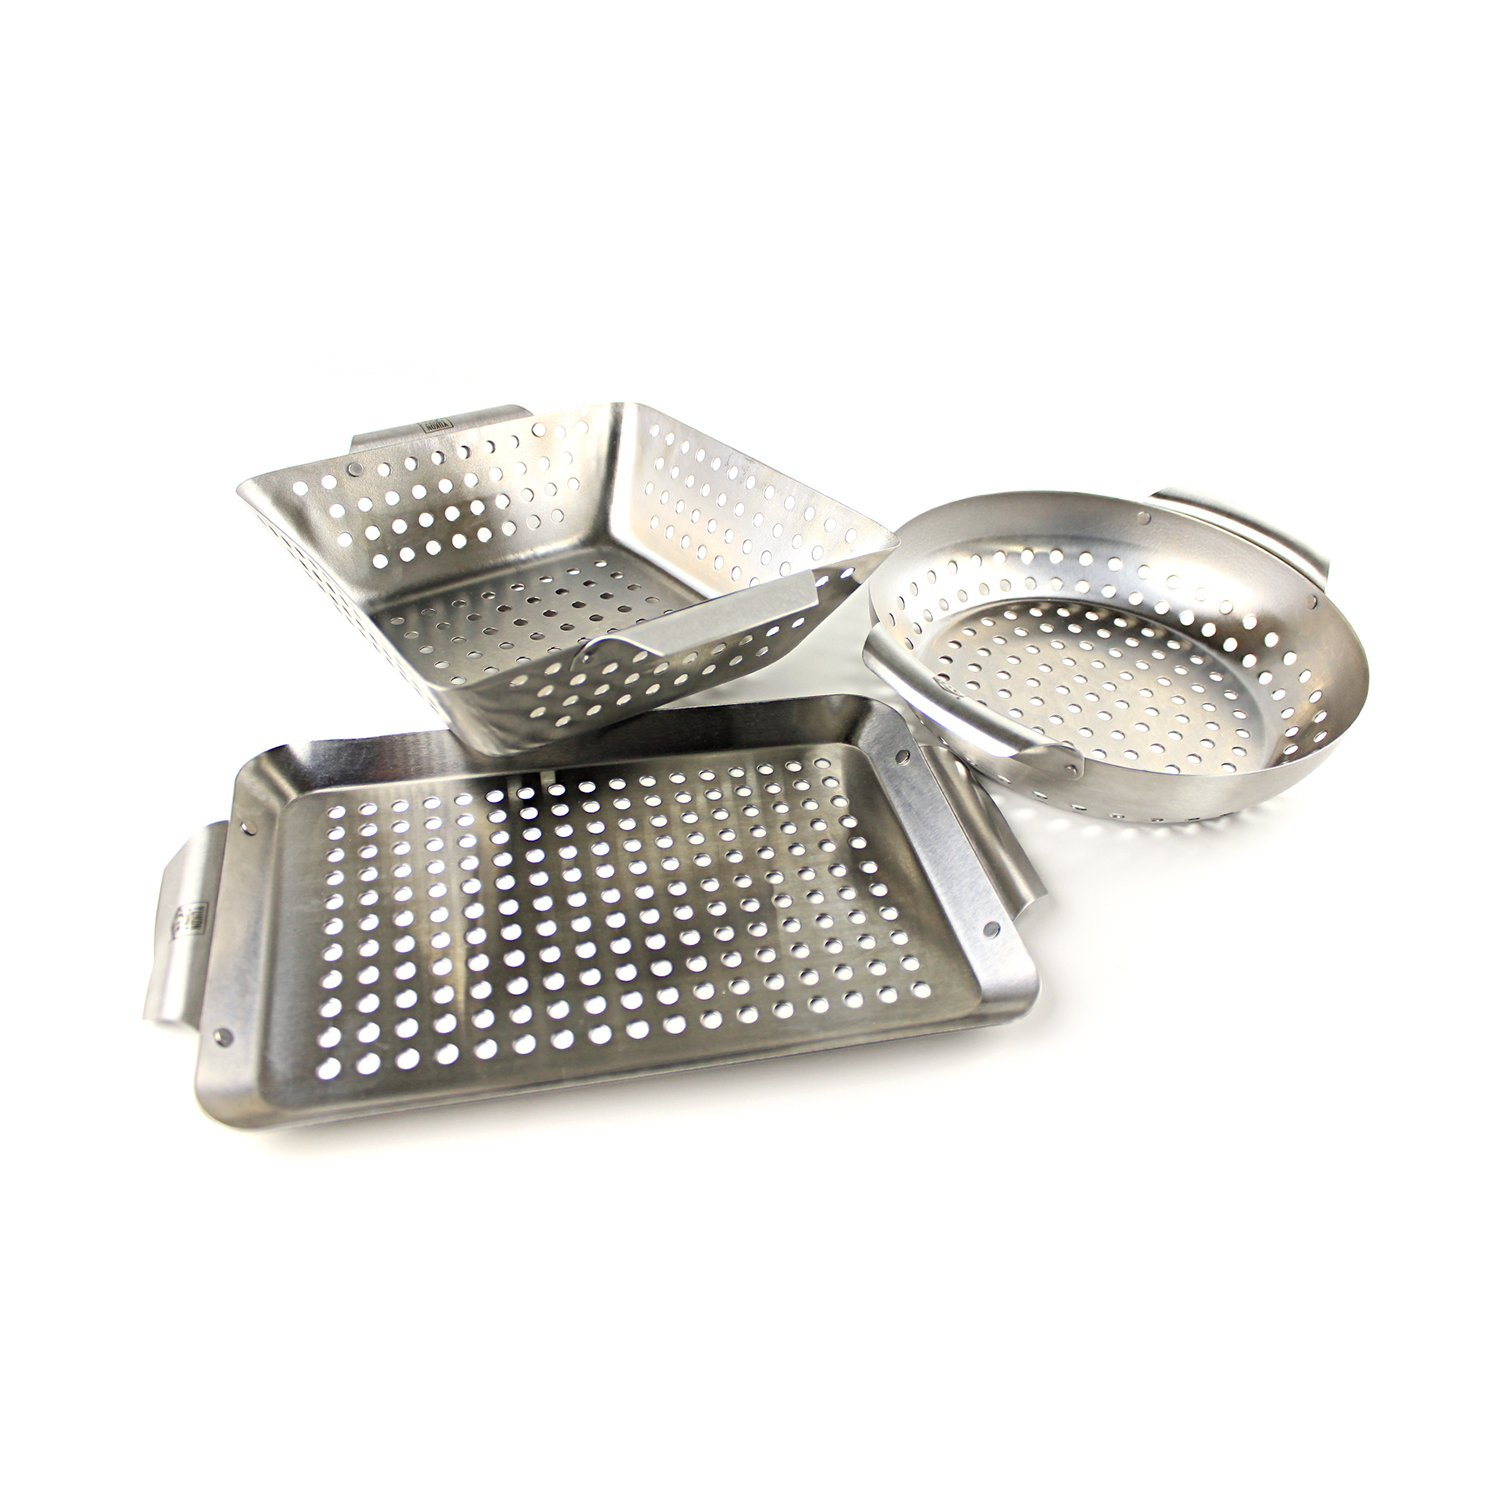 Yukon Glory Set of 3 Professional Barbecue Mini Grilling Basket Set, Heavy Duty Stainless Steel Perforated Grill Baskets for Grilling Veggies, Seafood, and More by Yukon Glory